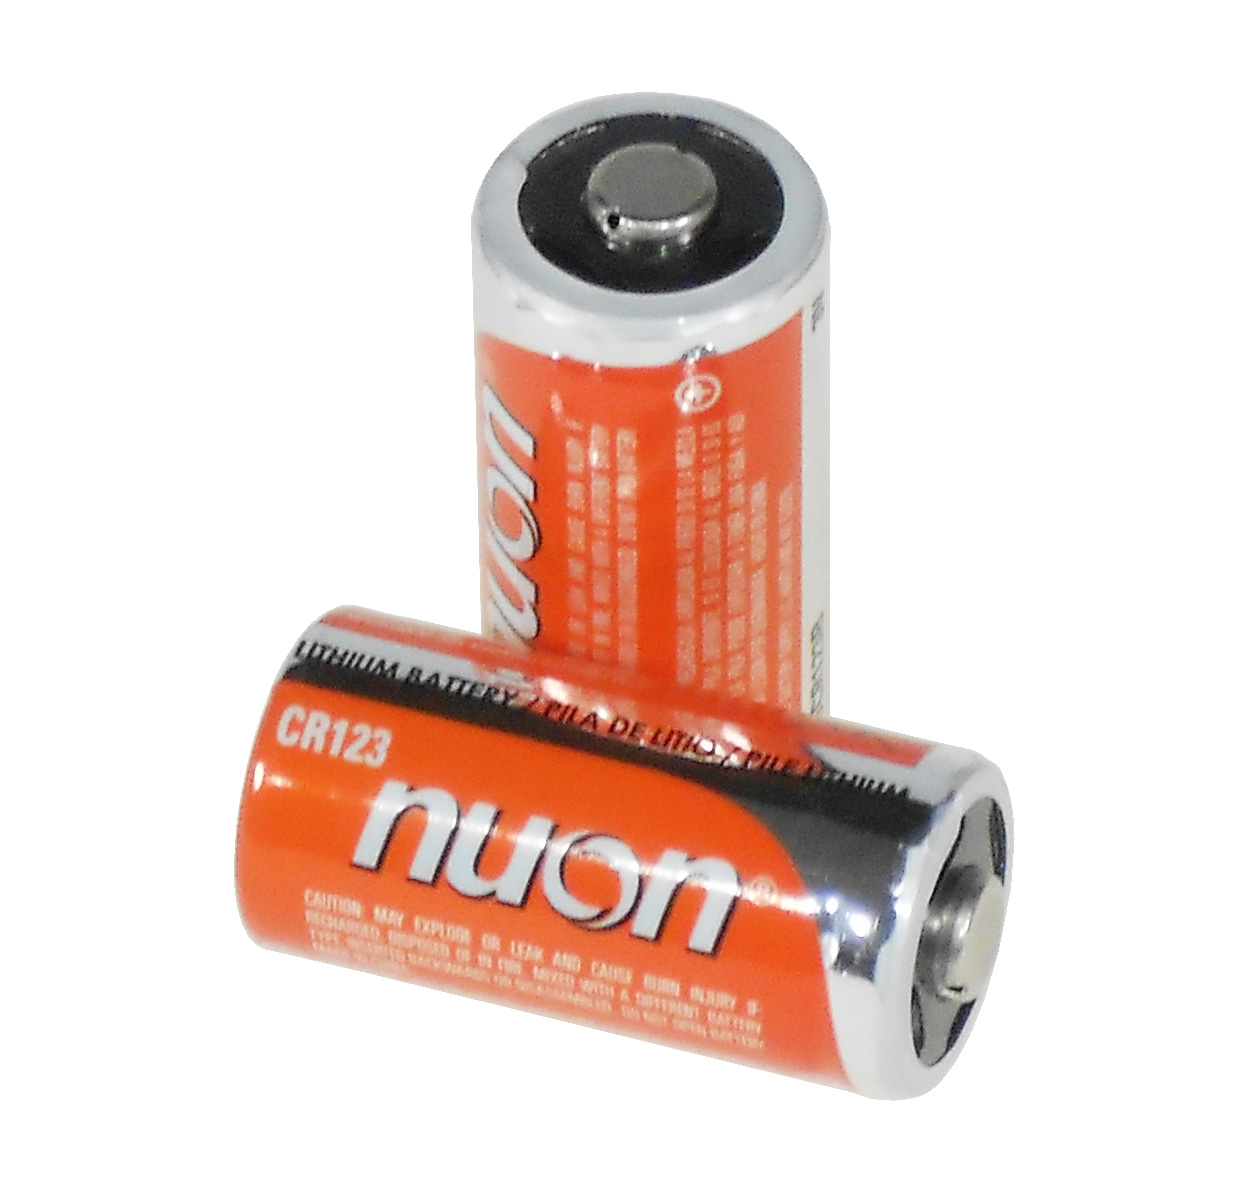 nuon nucr123b 3v lithium photo batteries size cr123a 2 pack. Black Bedroom Furniture Sets. Home Design Ideas